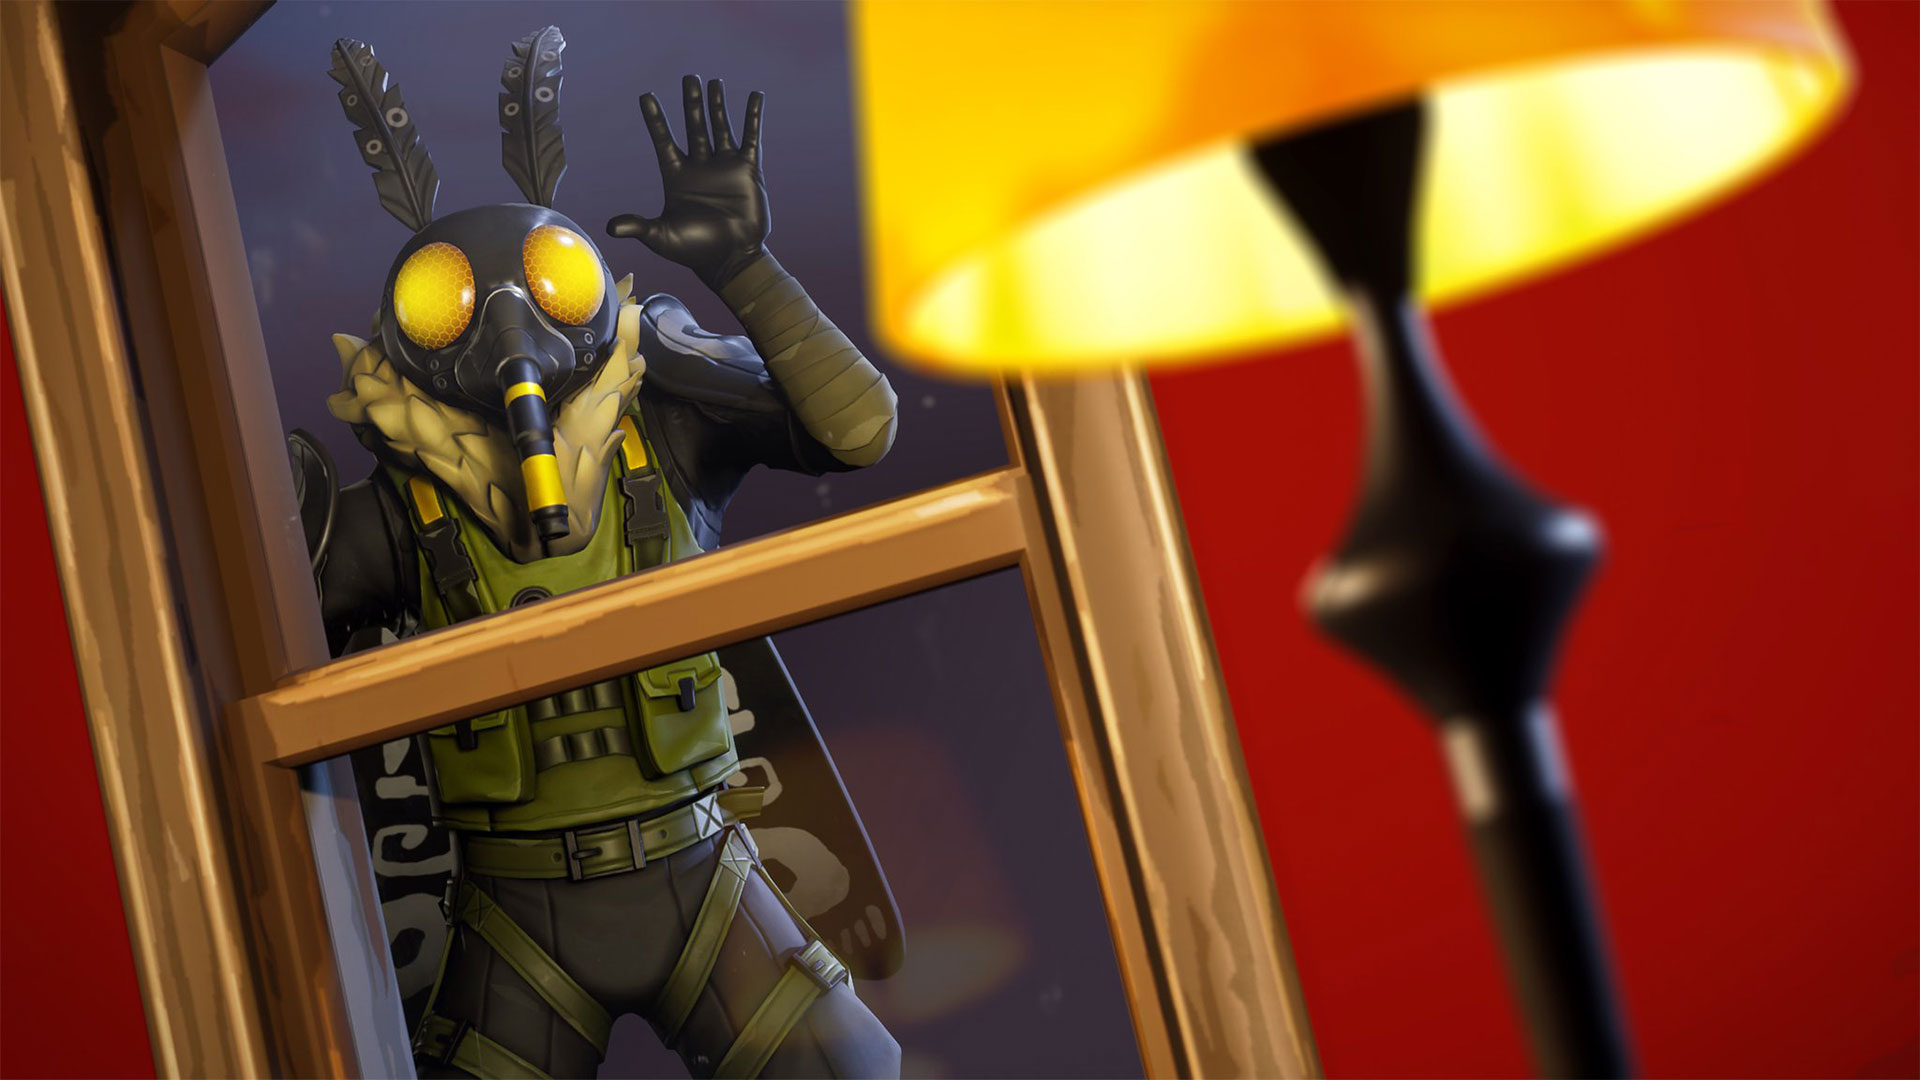 Fortnite Mothmando Skin - Outfit, PNGs, Images - Pro Game